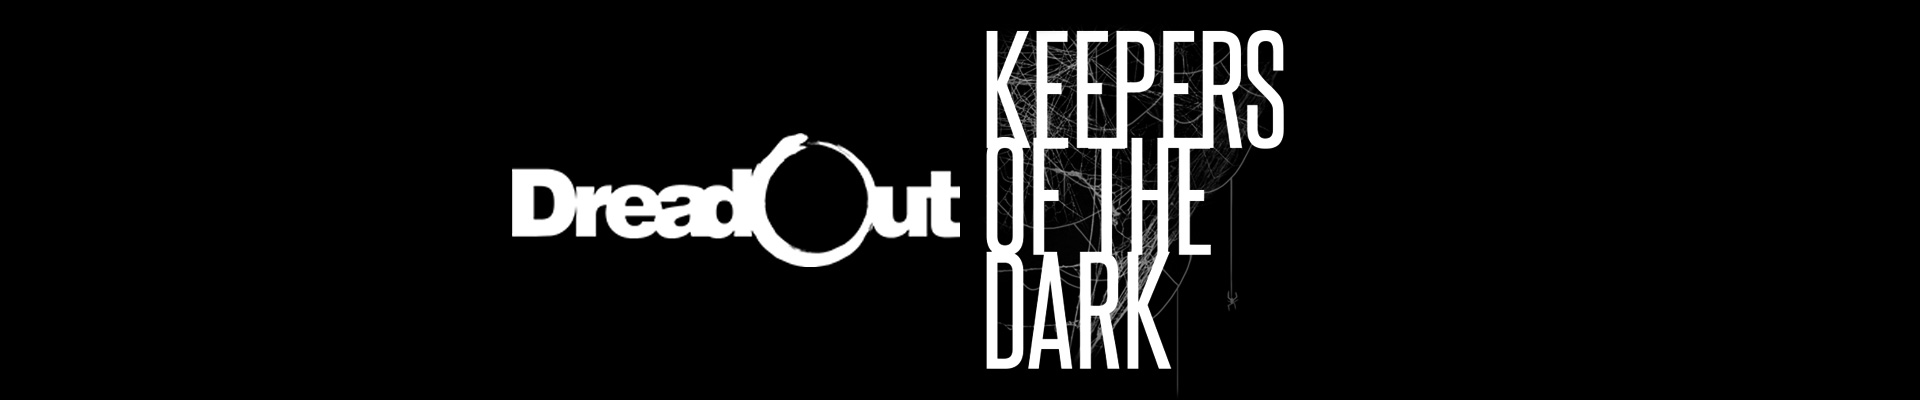 Thoughts on: DreadOut and Keepers of the Dark